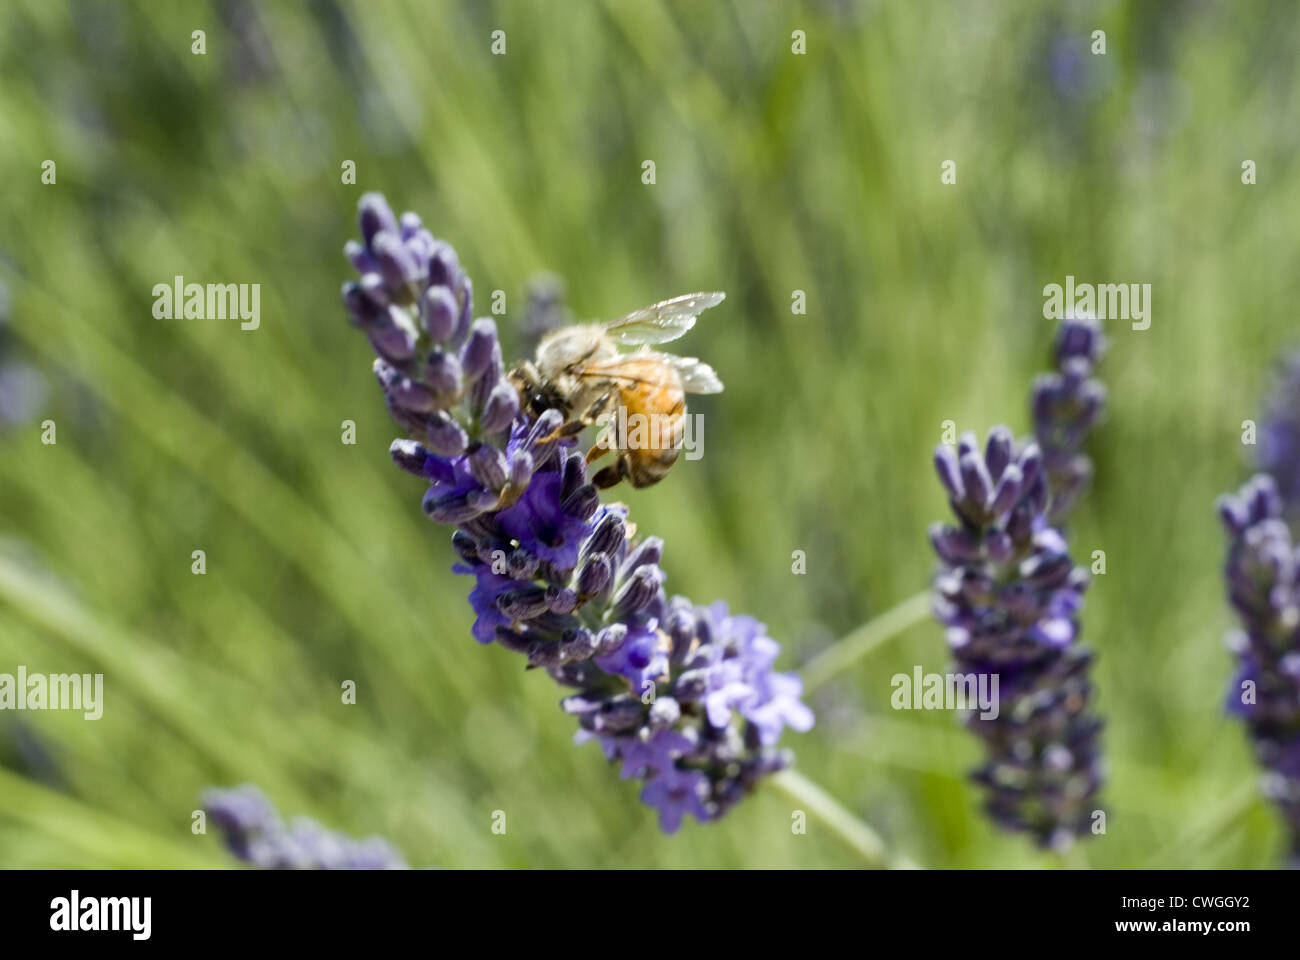 Bee Feeding on a Lavender Bloom Stock Photo